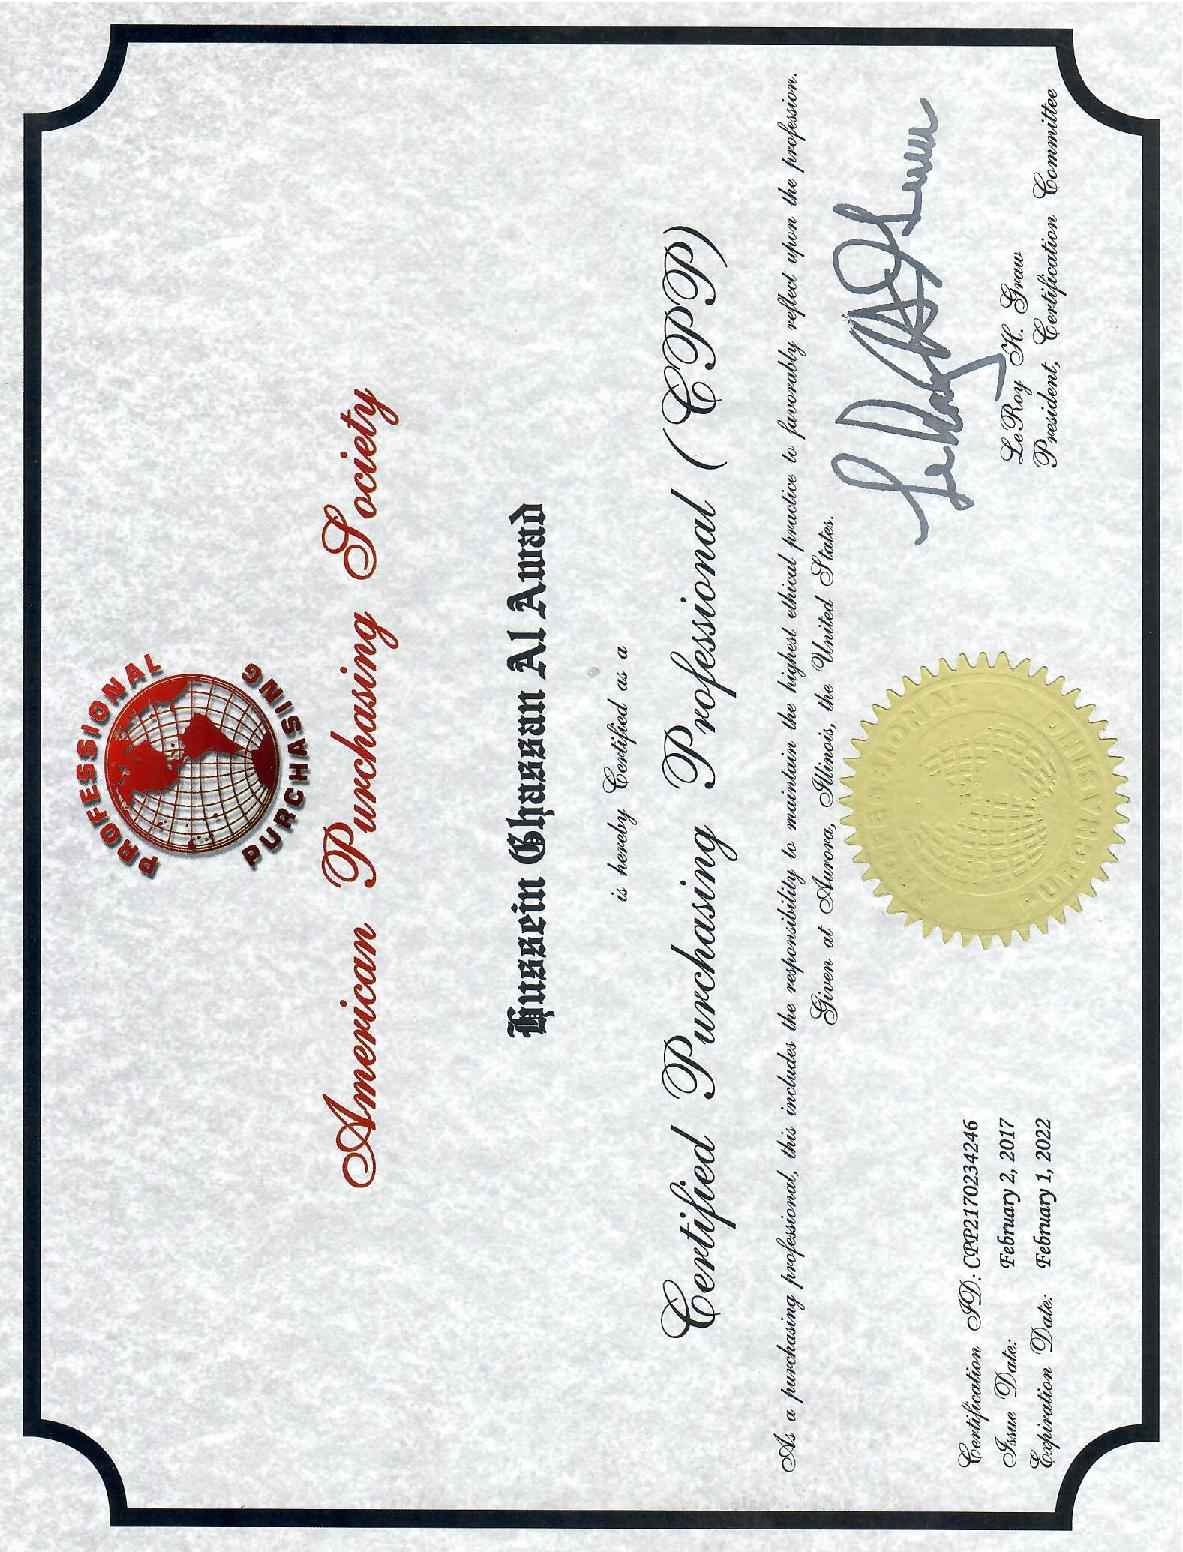 Hussein al awad bayt certified purchasing professional cpp american purchasing society certificate xflitez Image collections